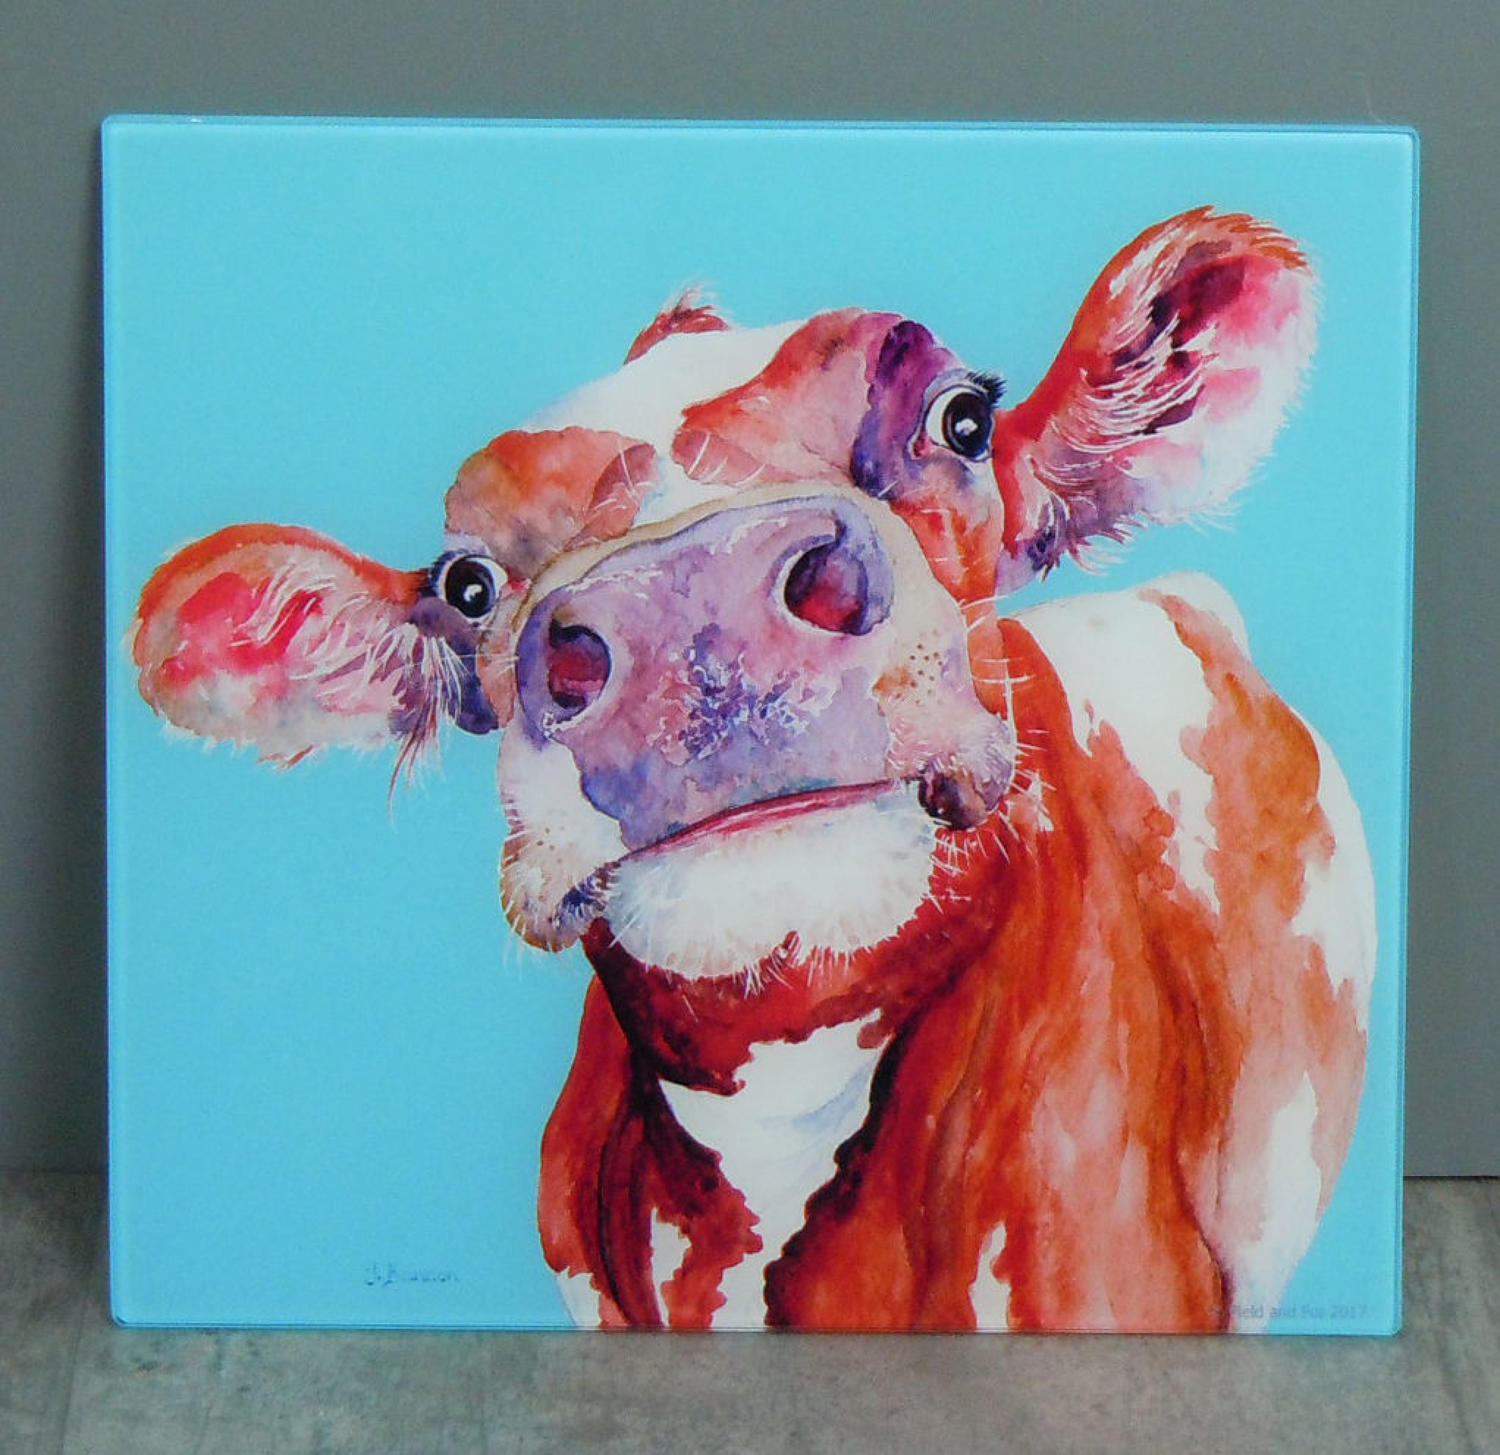 Glass Cow chopping board, worktop saver